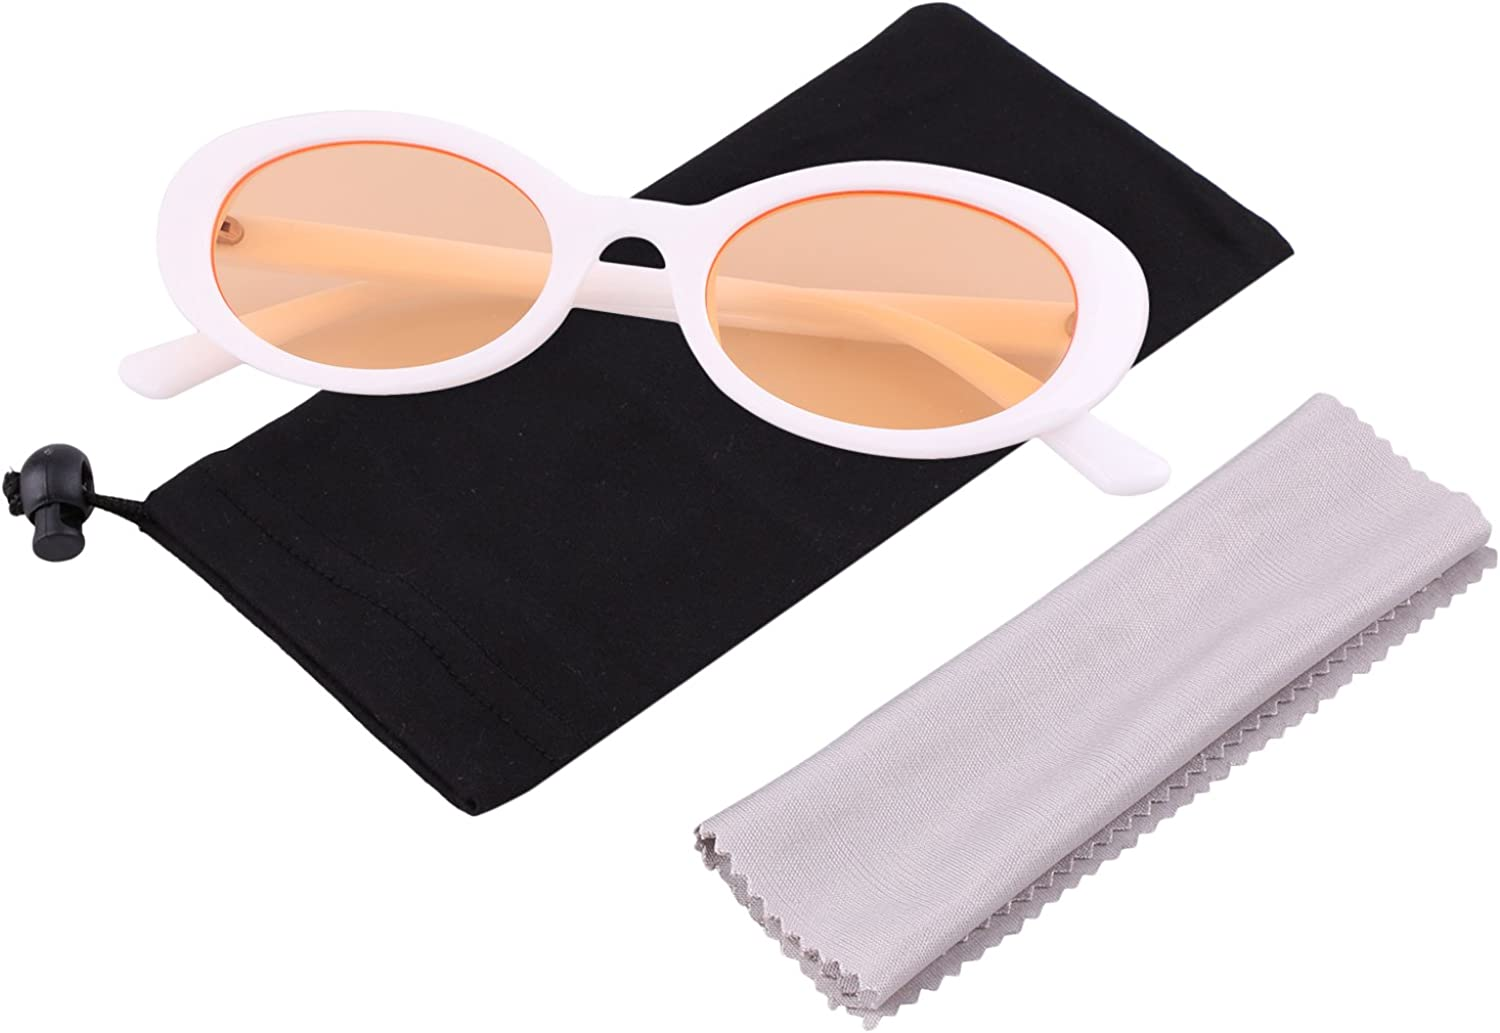 Bold Retro Thick Frame Clout Goggles Oval Mod Lens Candy Eye Sunglass by MAFAGE (White&orange)